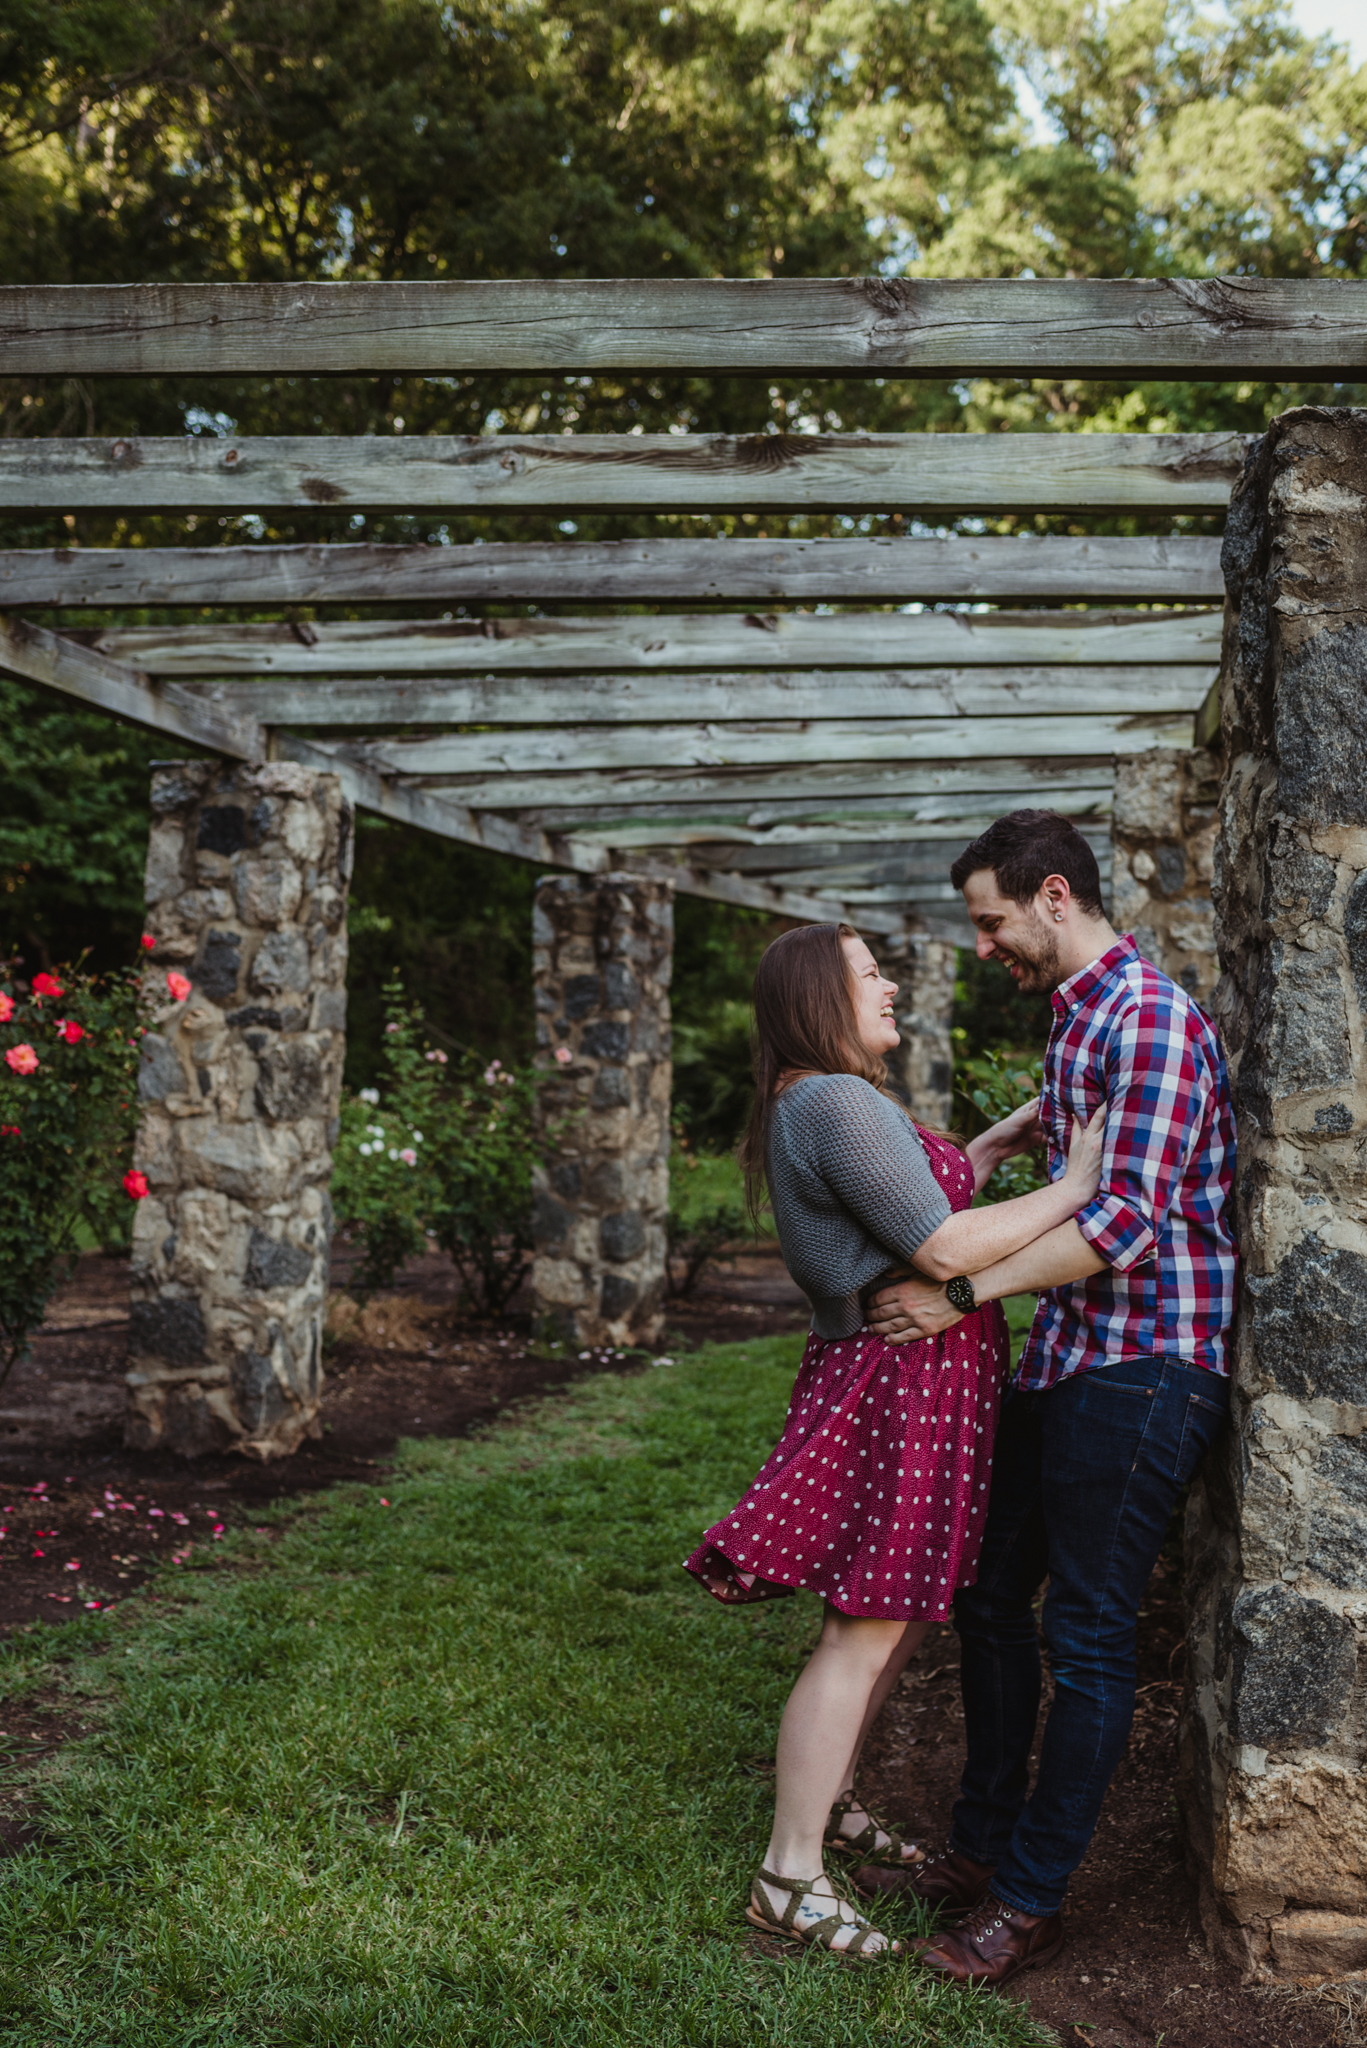 The bride and groom to be laugh with each other under the trellis while at the Raleigh Rose Garden during their engagement session with Rose Trail Images.